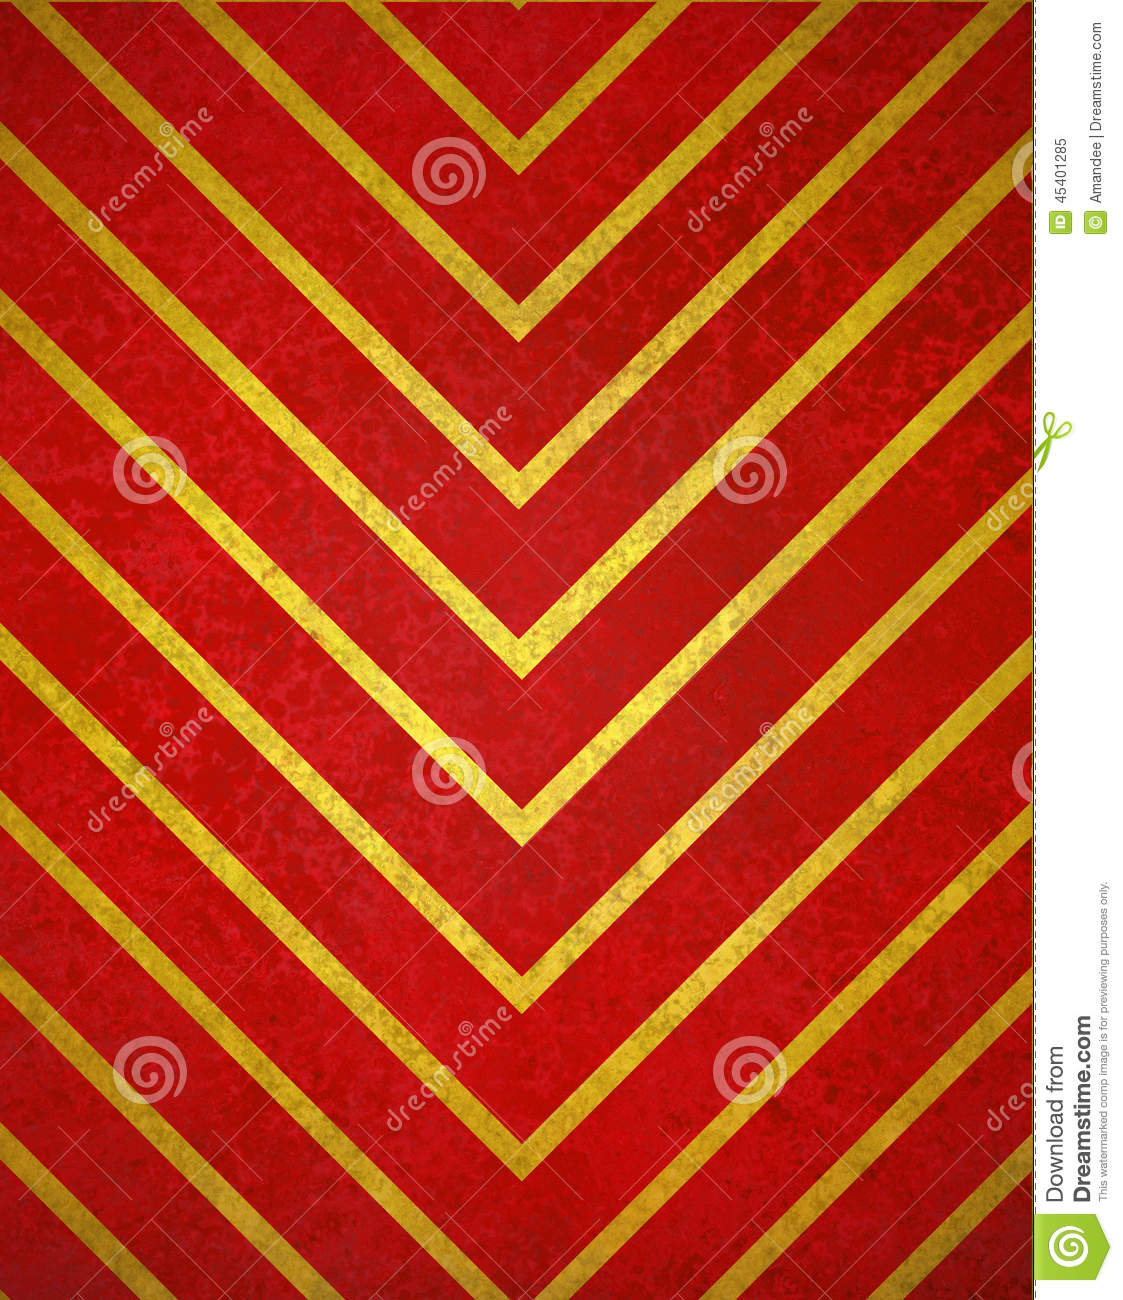 Red Background Gold Chevron Pattern Design With Texture